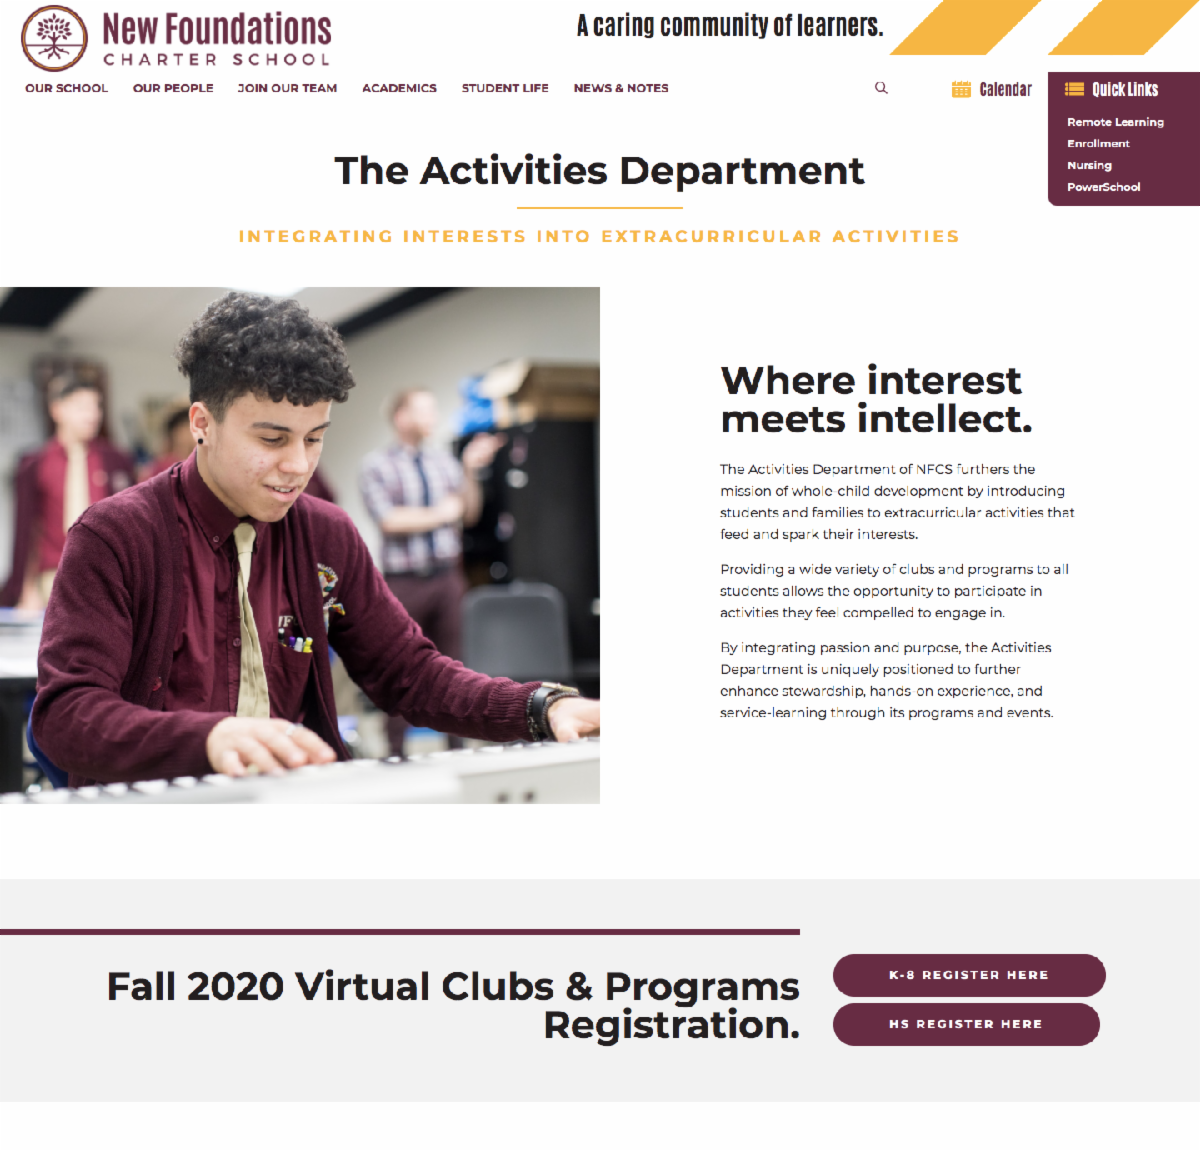 Image of the NFCS Student Life- Activities webpage